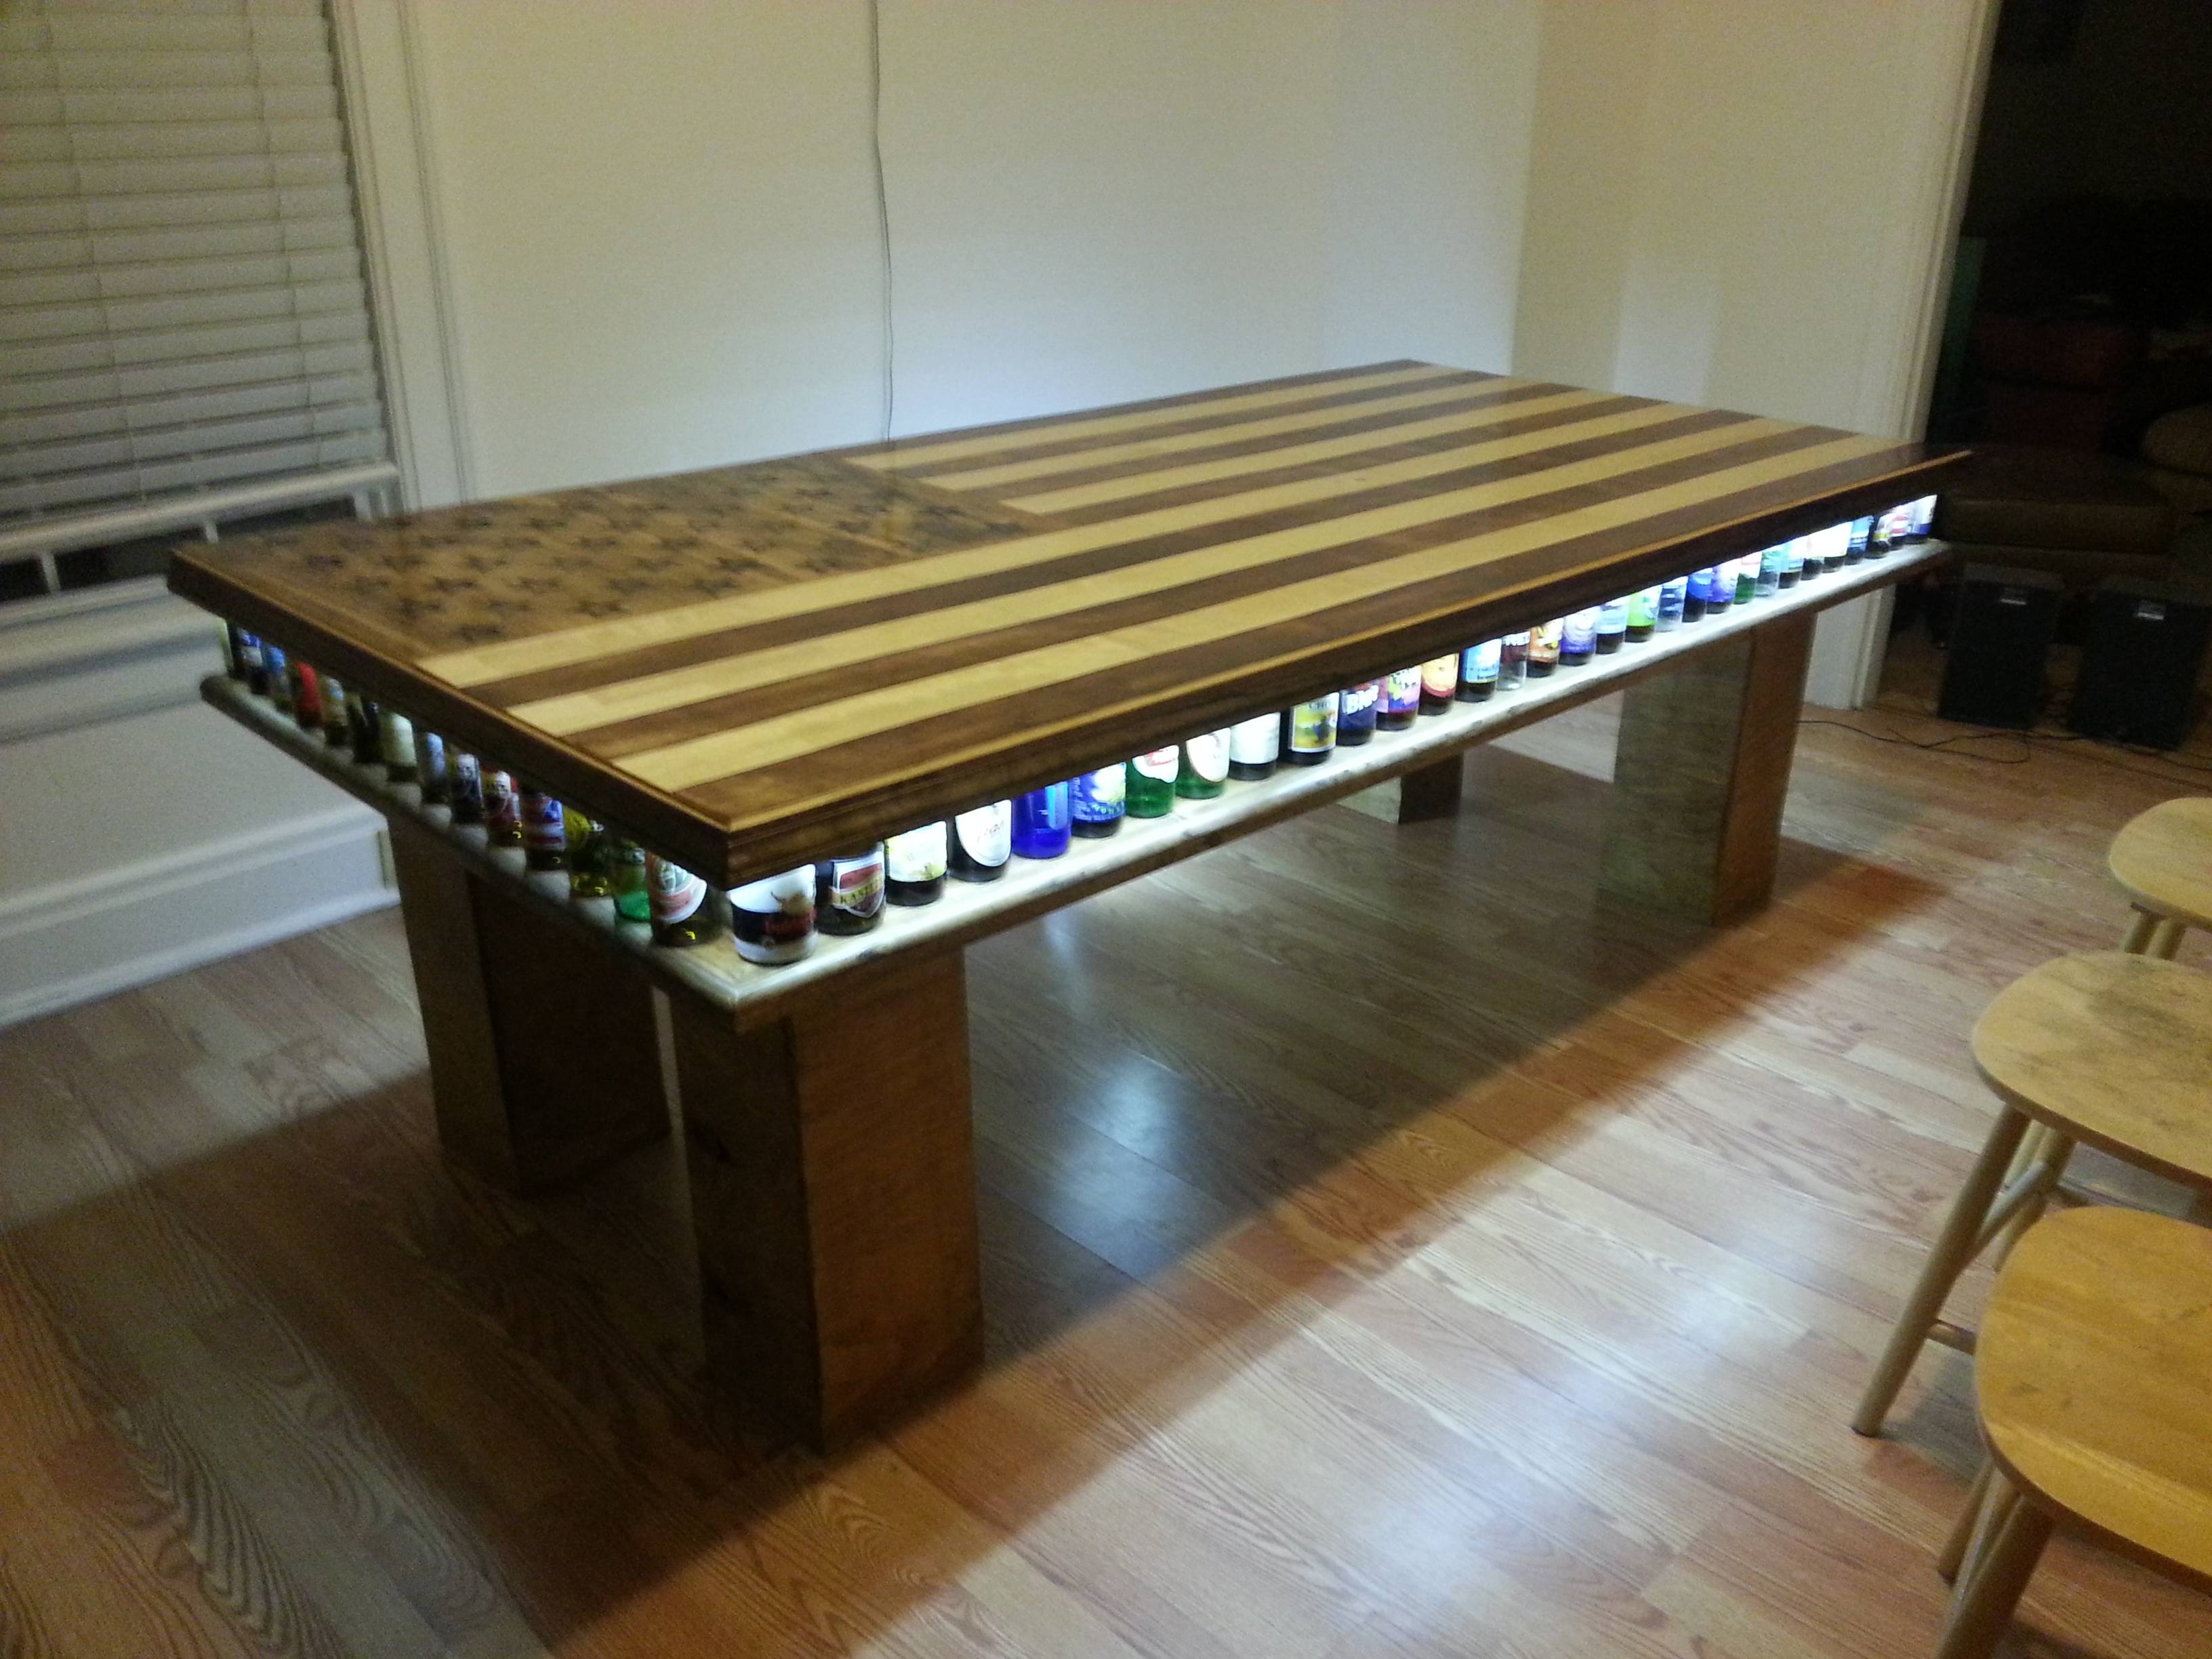 Homemade beer pong table - Homemade Beer Pong Table 31